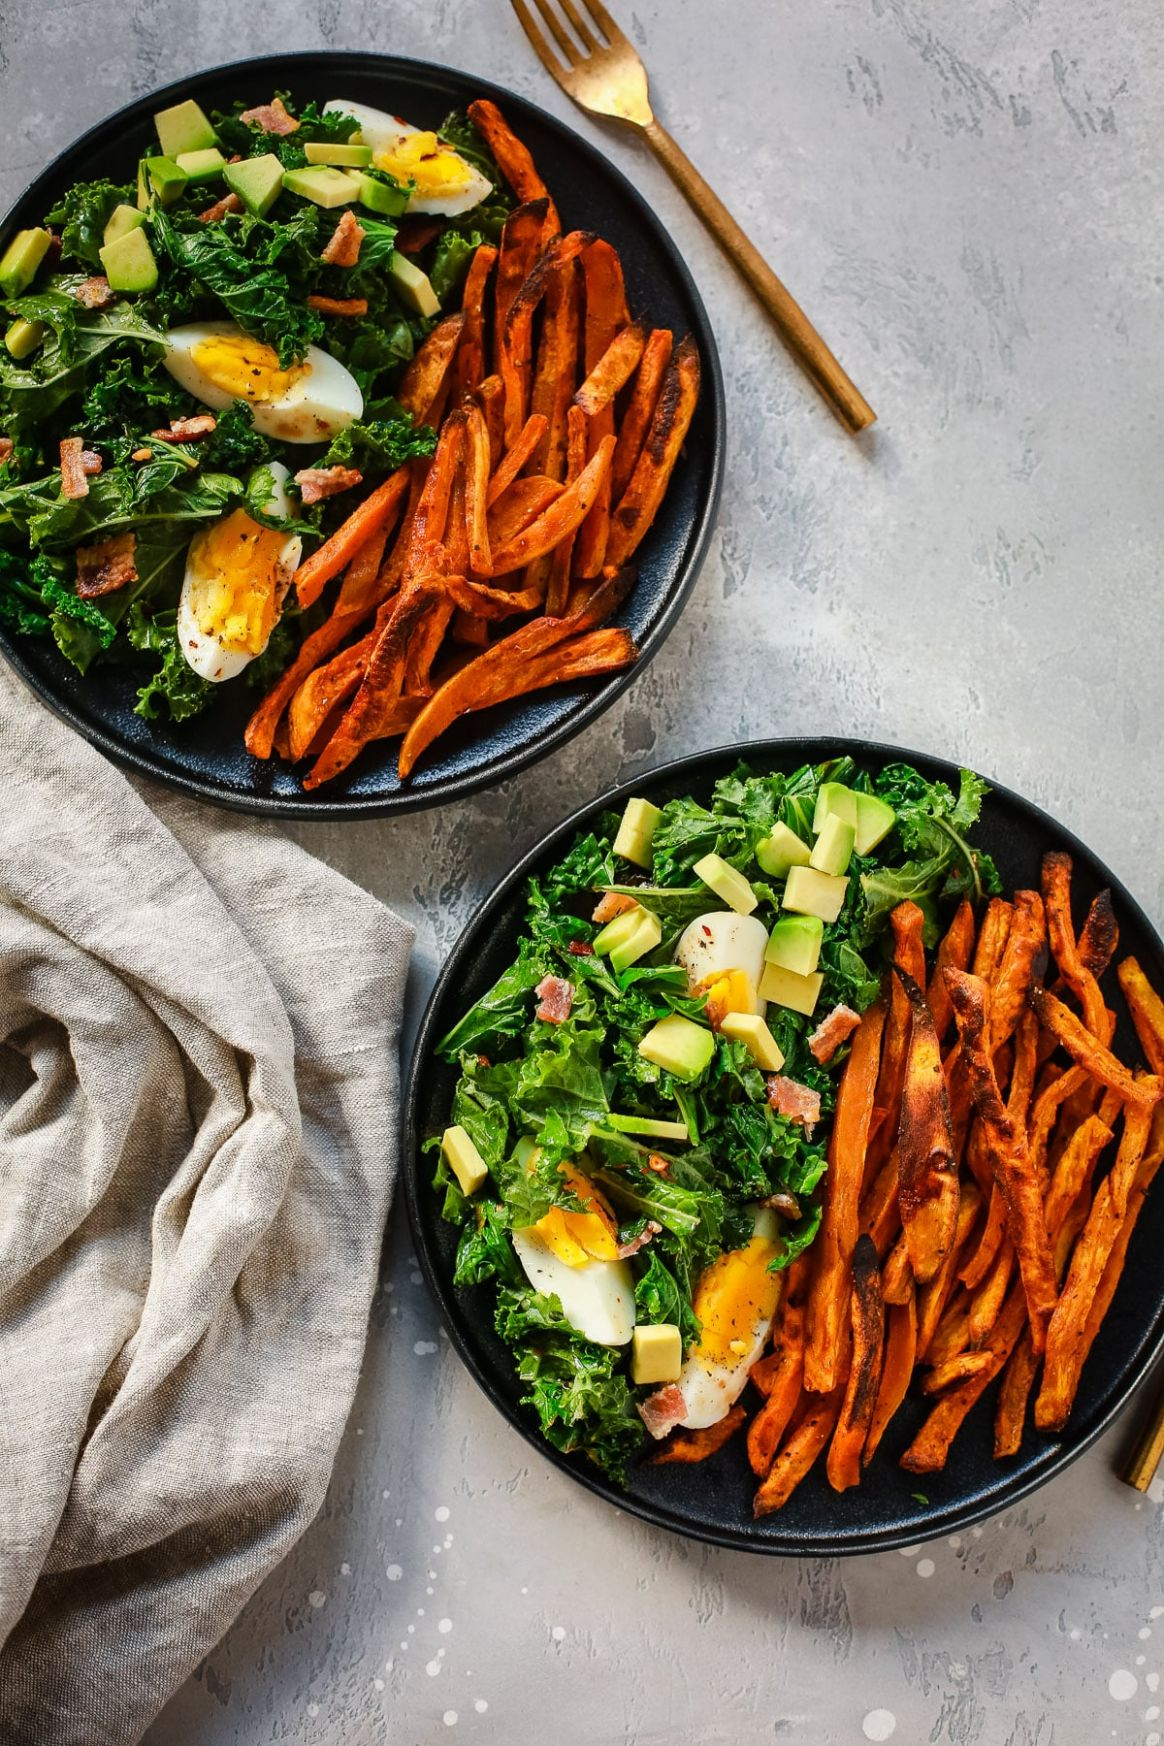 Kale Salad with Crispy Sweet Potato (Quick and Easy Whoel12 Lunch) - Potato Recipes Lunch